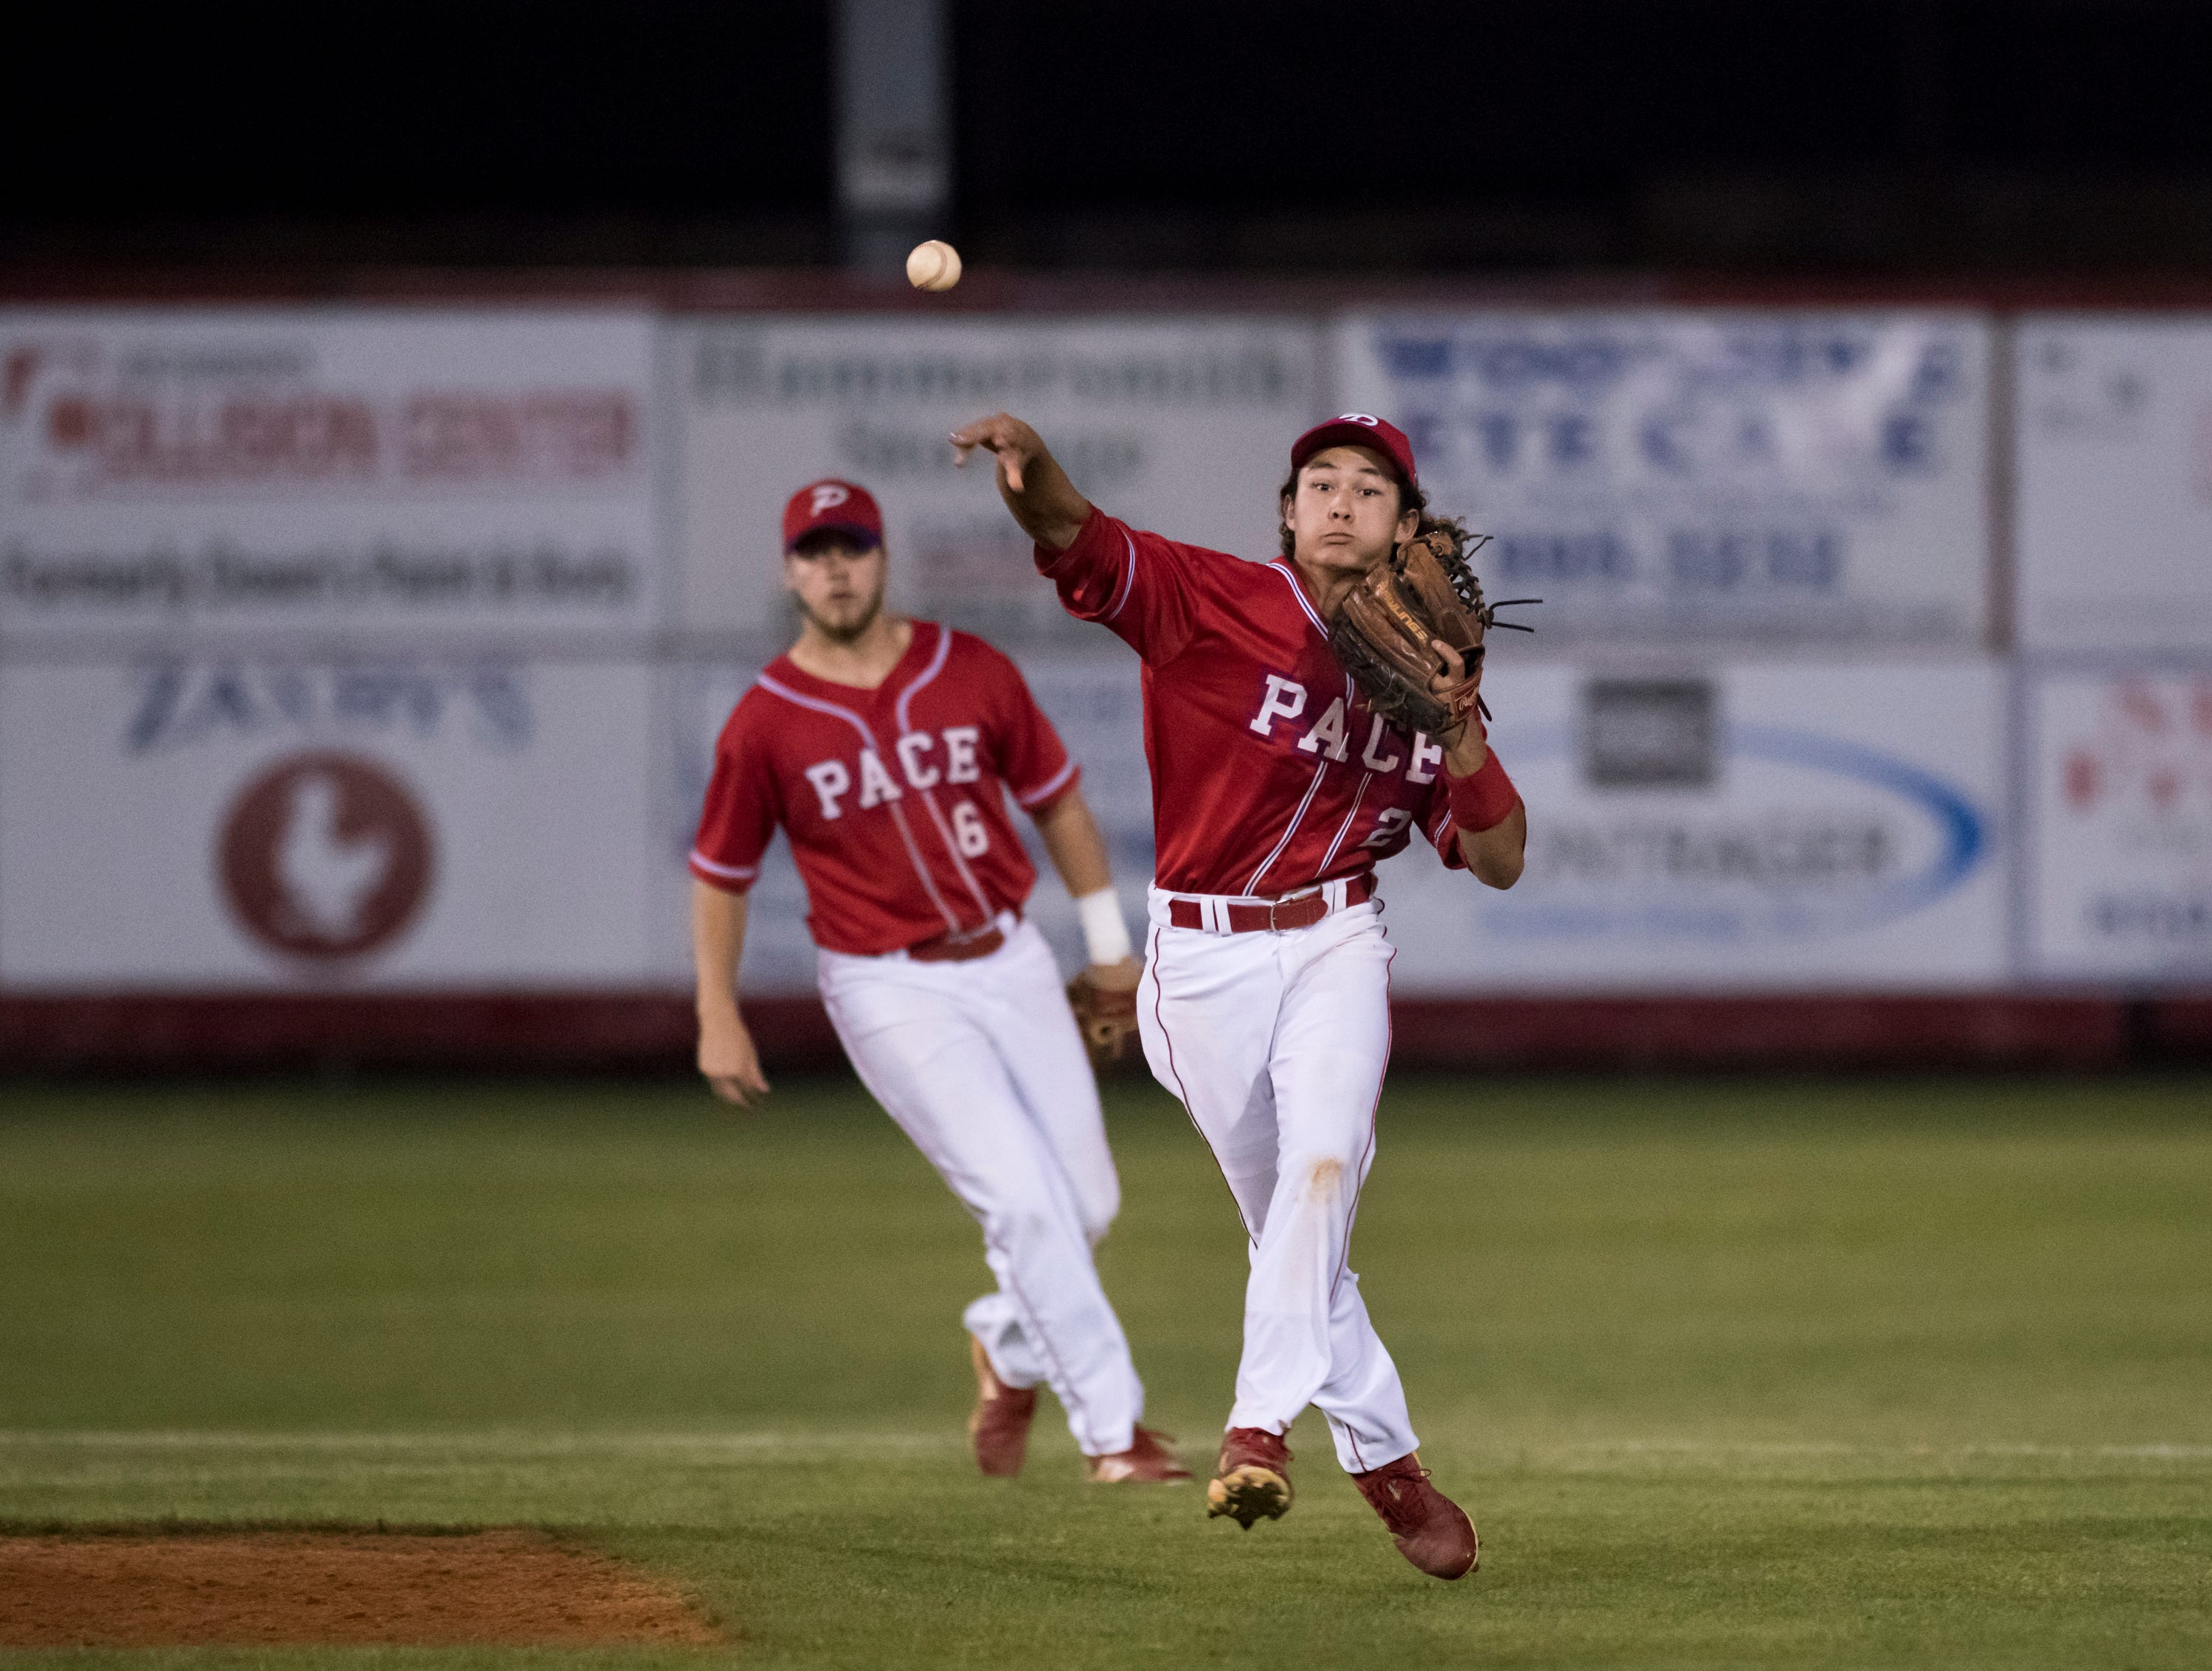 Caleb Vincent (24) errantly throws to first base during the Tate vs Pace baseball game at Pace High School on Thursday, April 11, 2019.